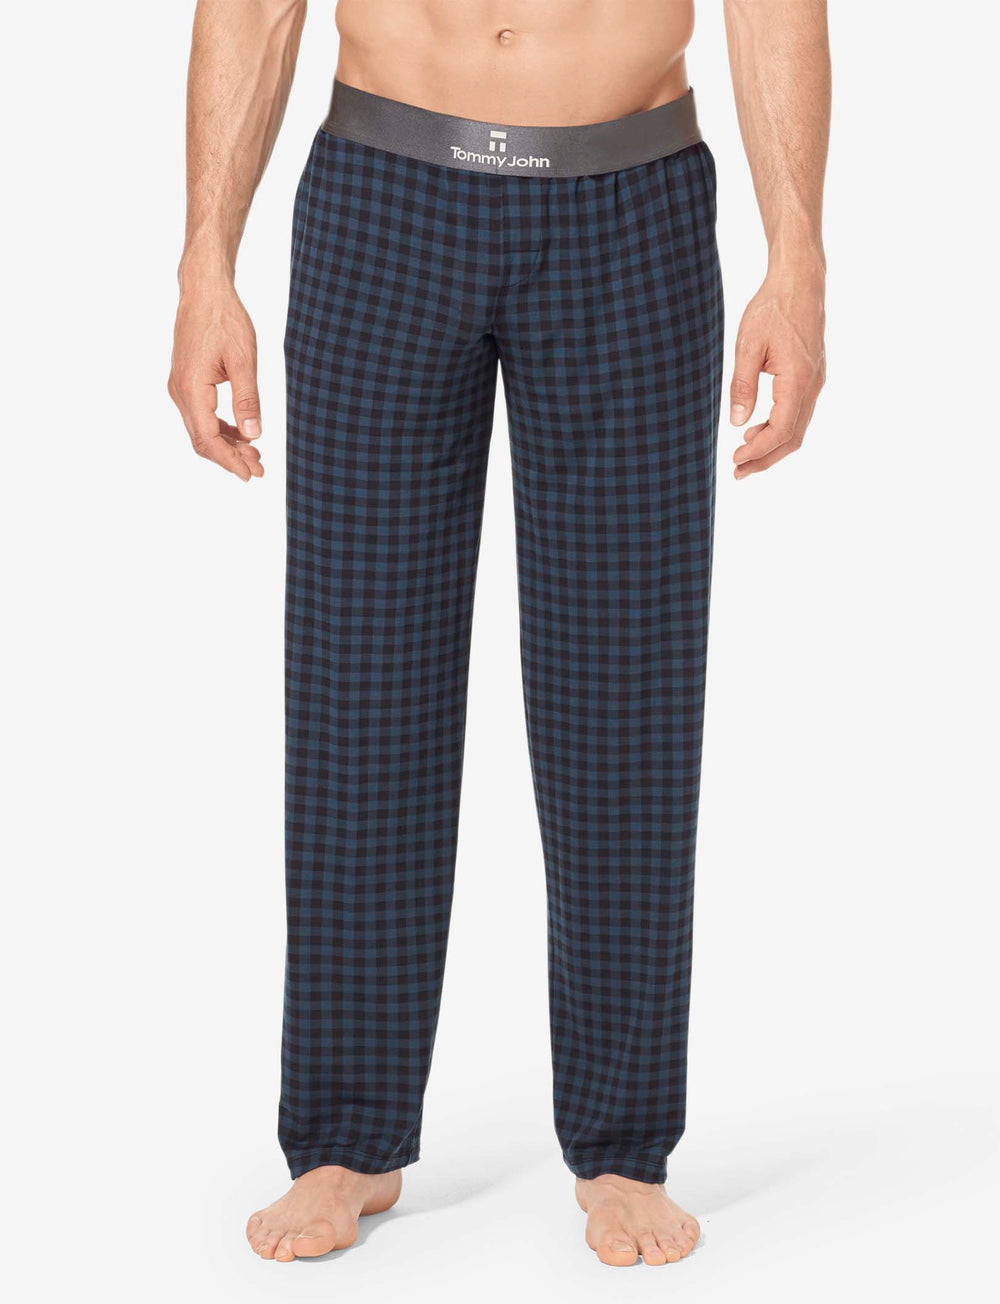 Second Skin Gingham Sleep Pant Details Image